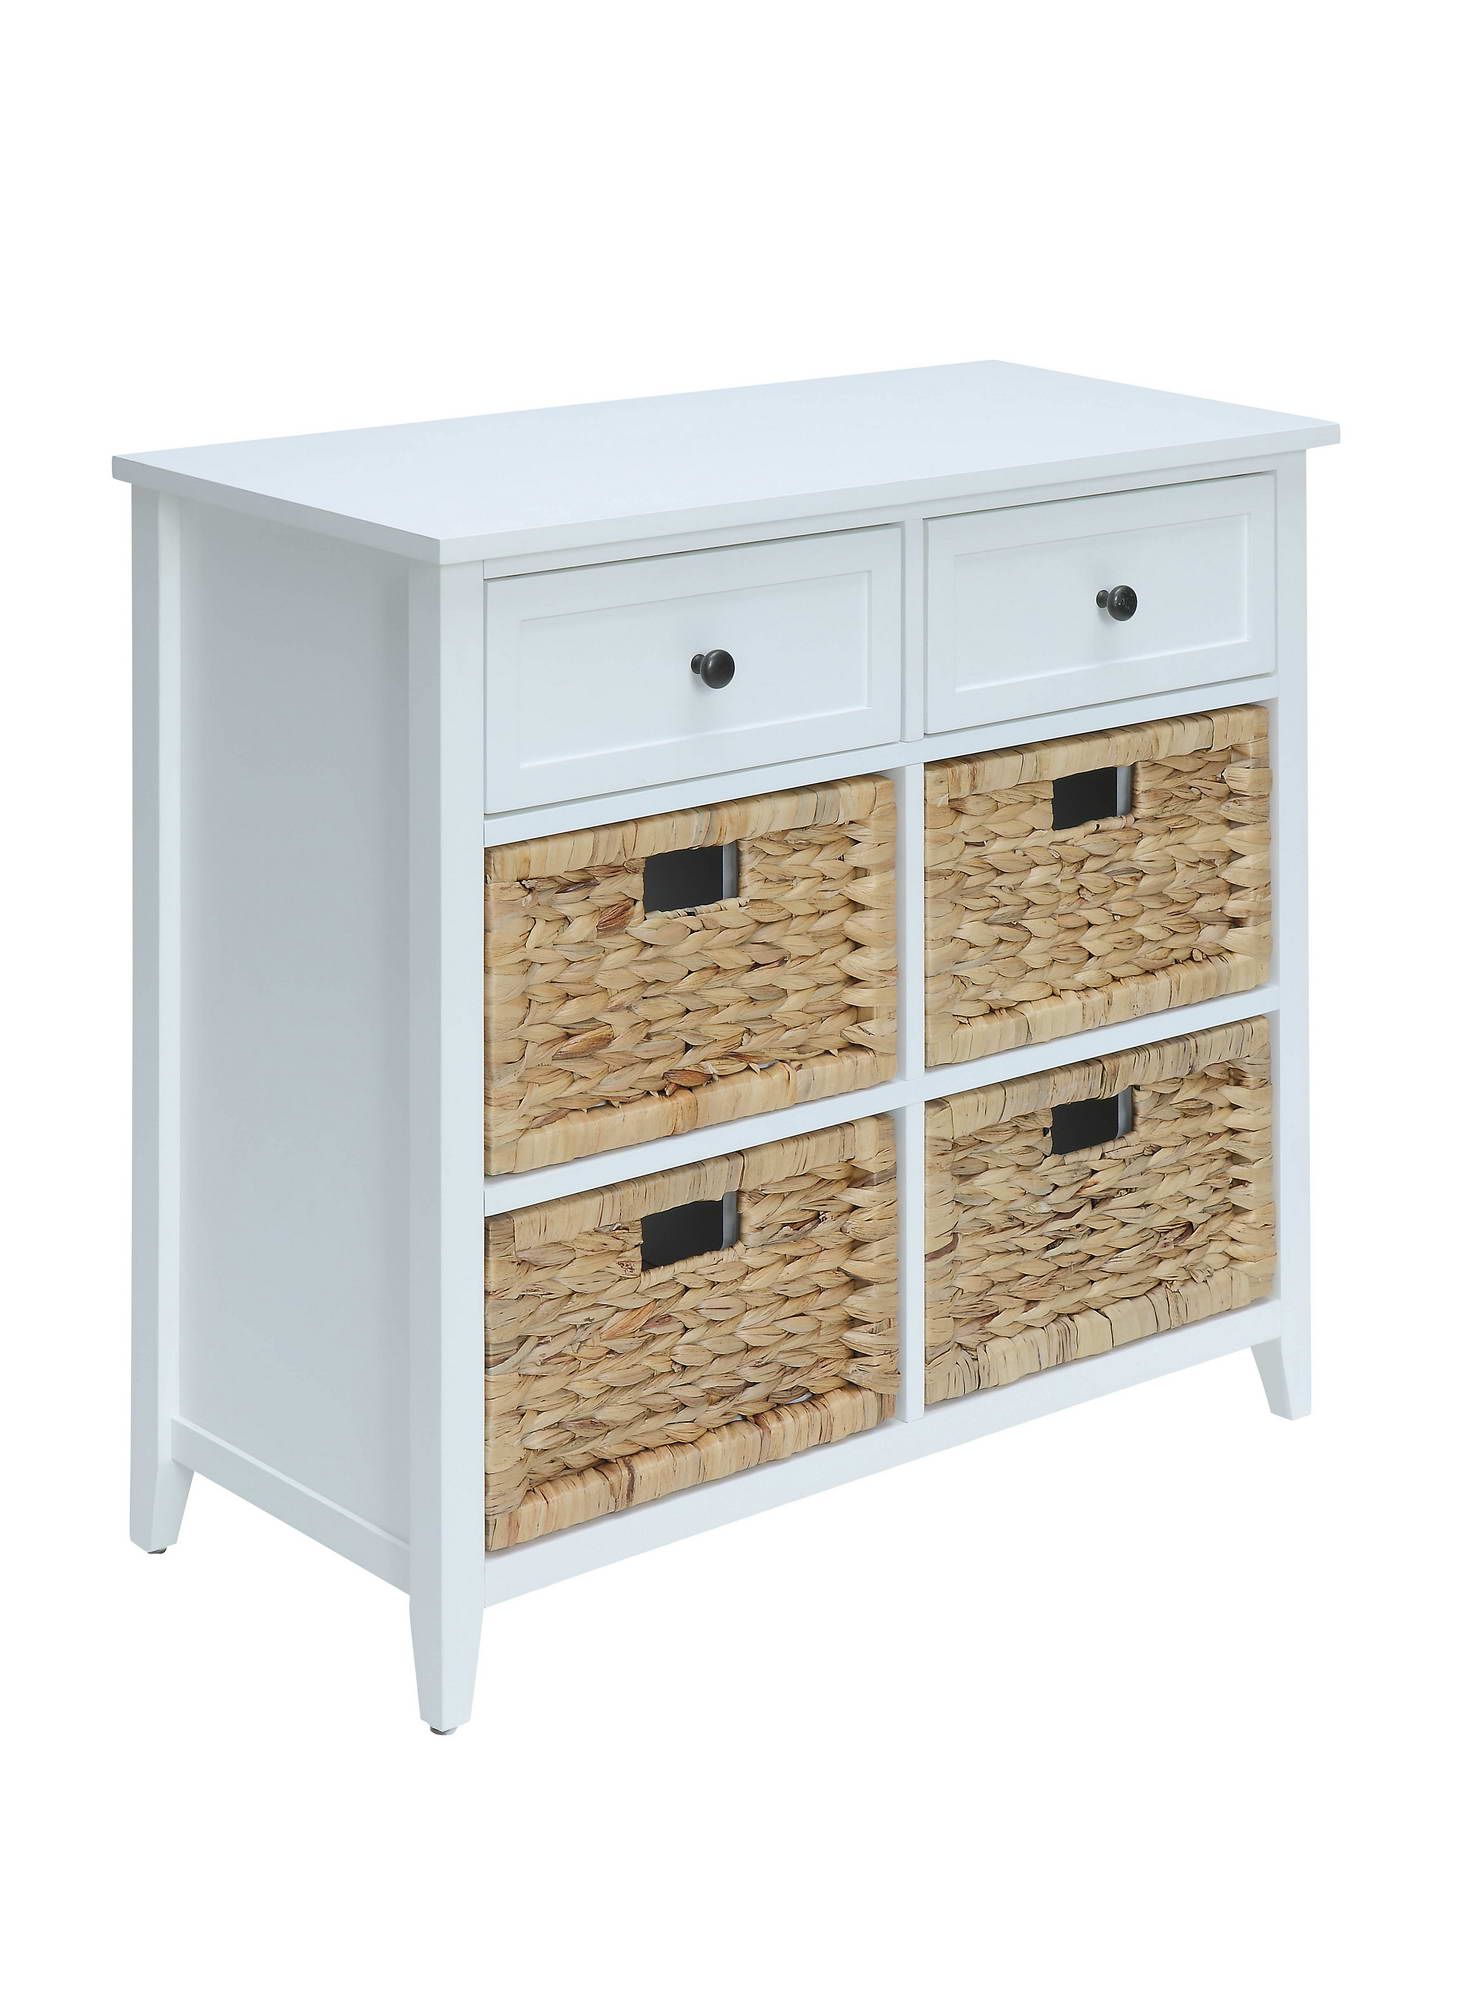 White Console Table Cabinet W/ Drawers & Baskets